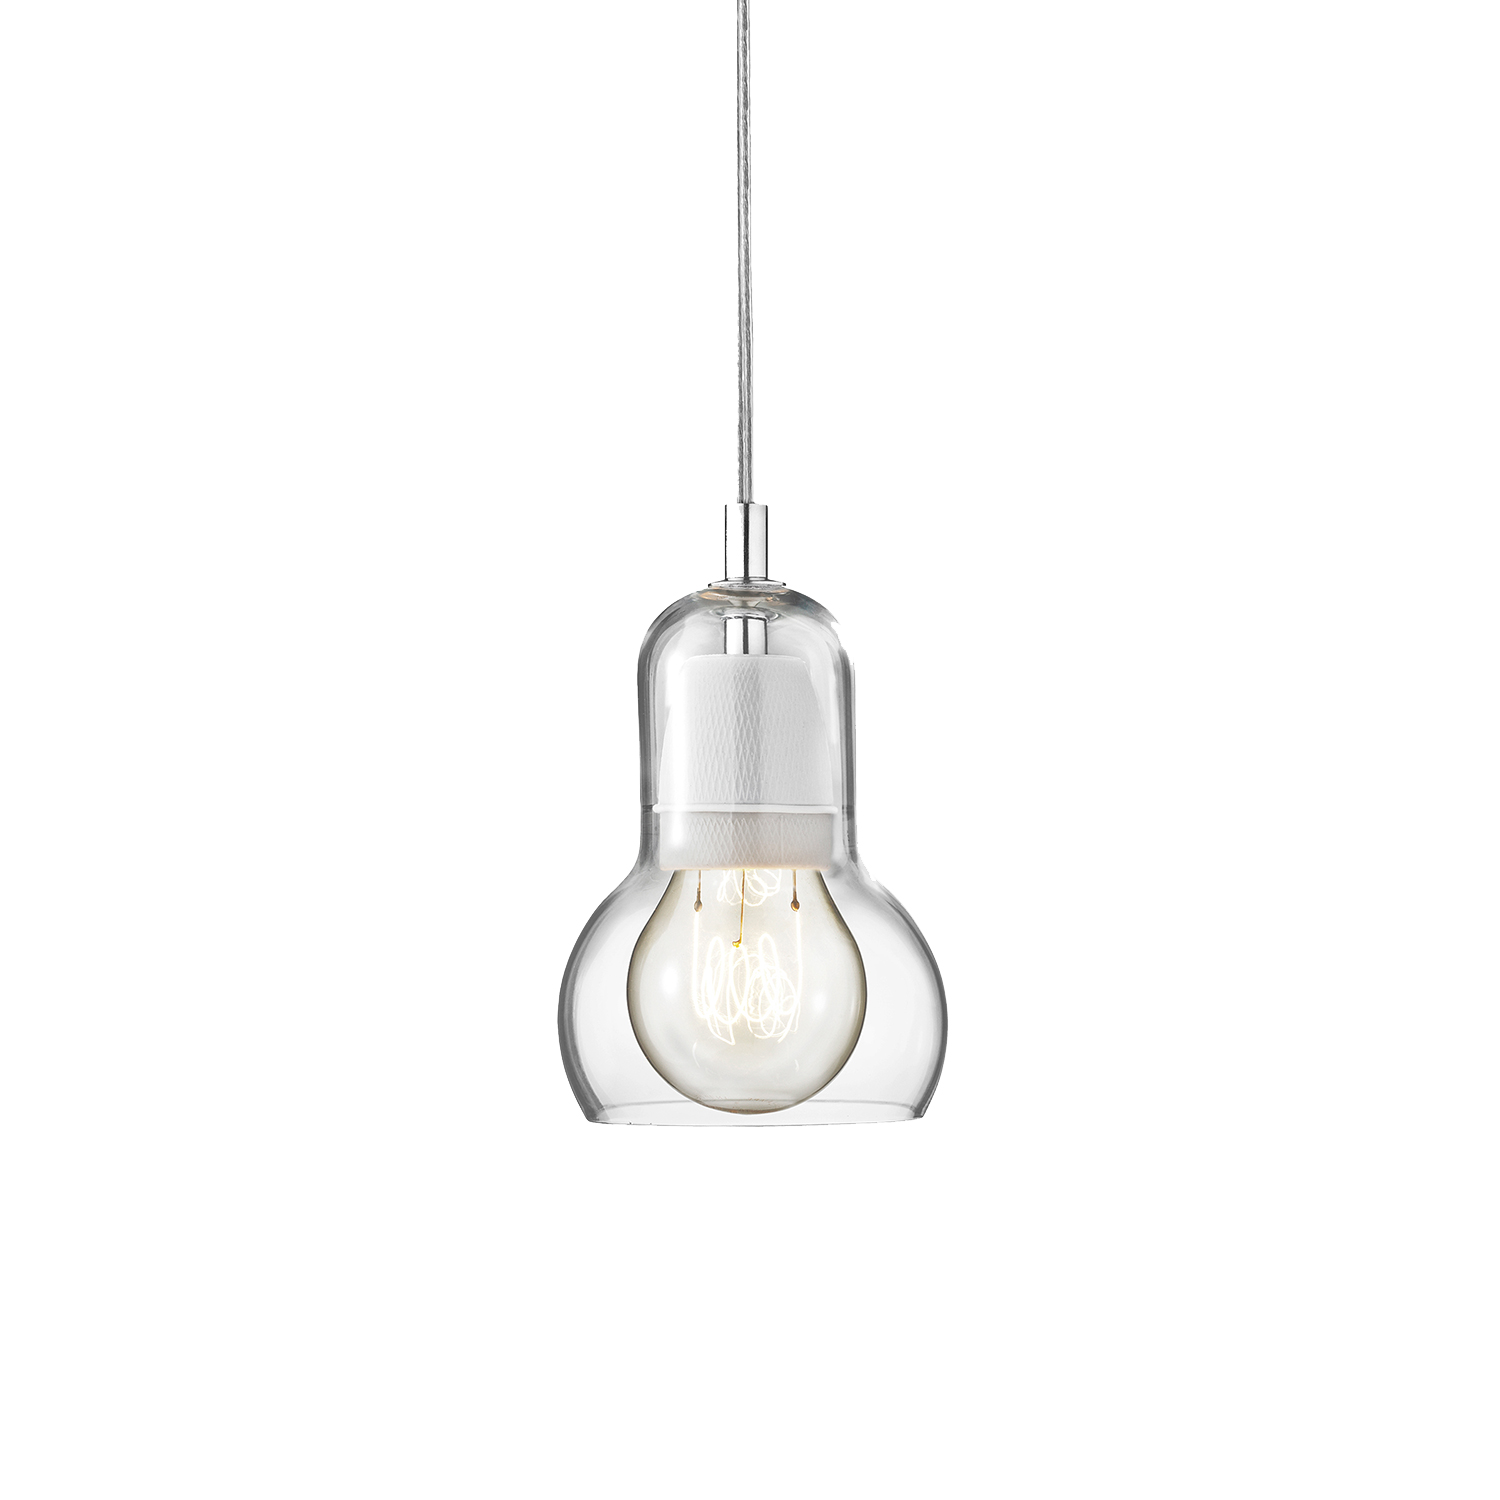 Bilde av &Tradition-Bulb Pendel Sr1, Transparent Ledning